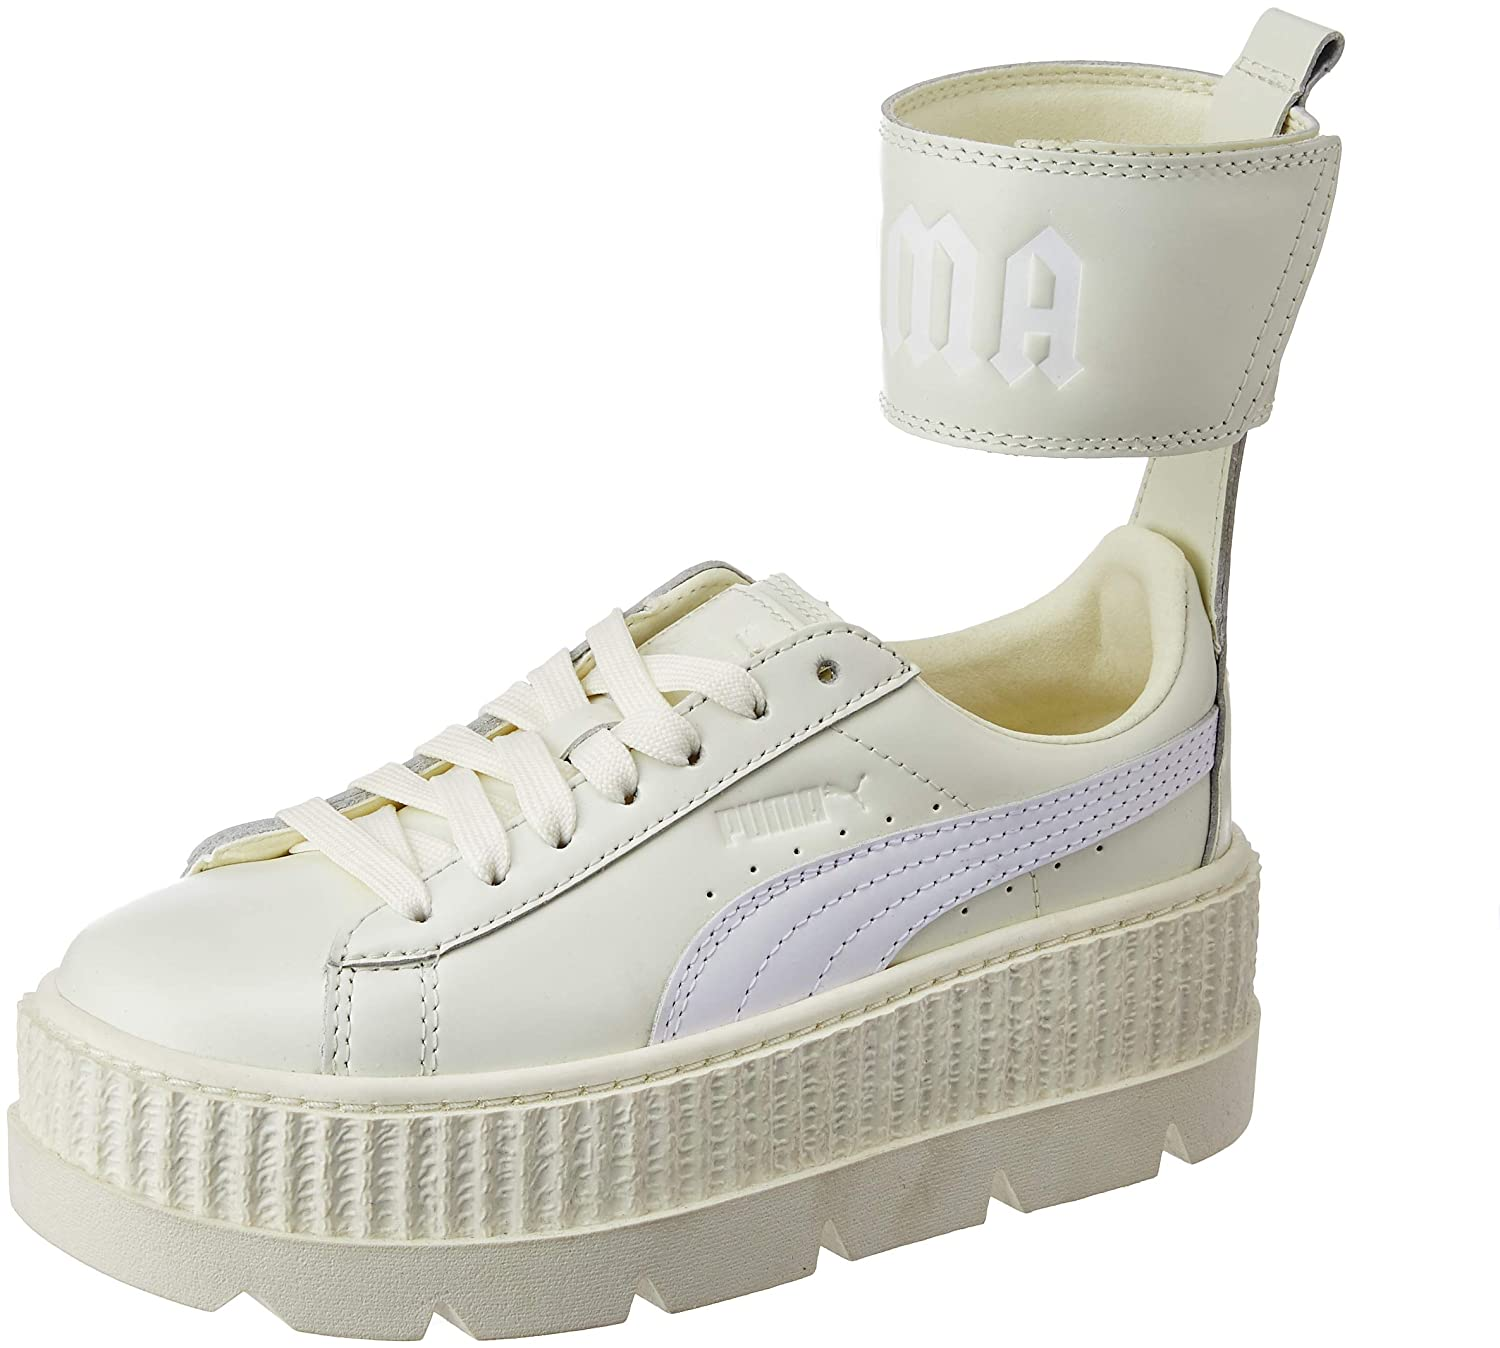 reputable site 074e6 8f942 Puma Fenty Ankle Strap Sneakers